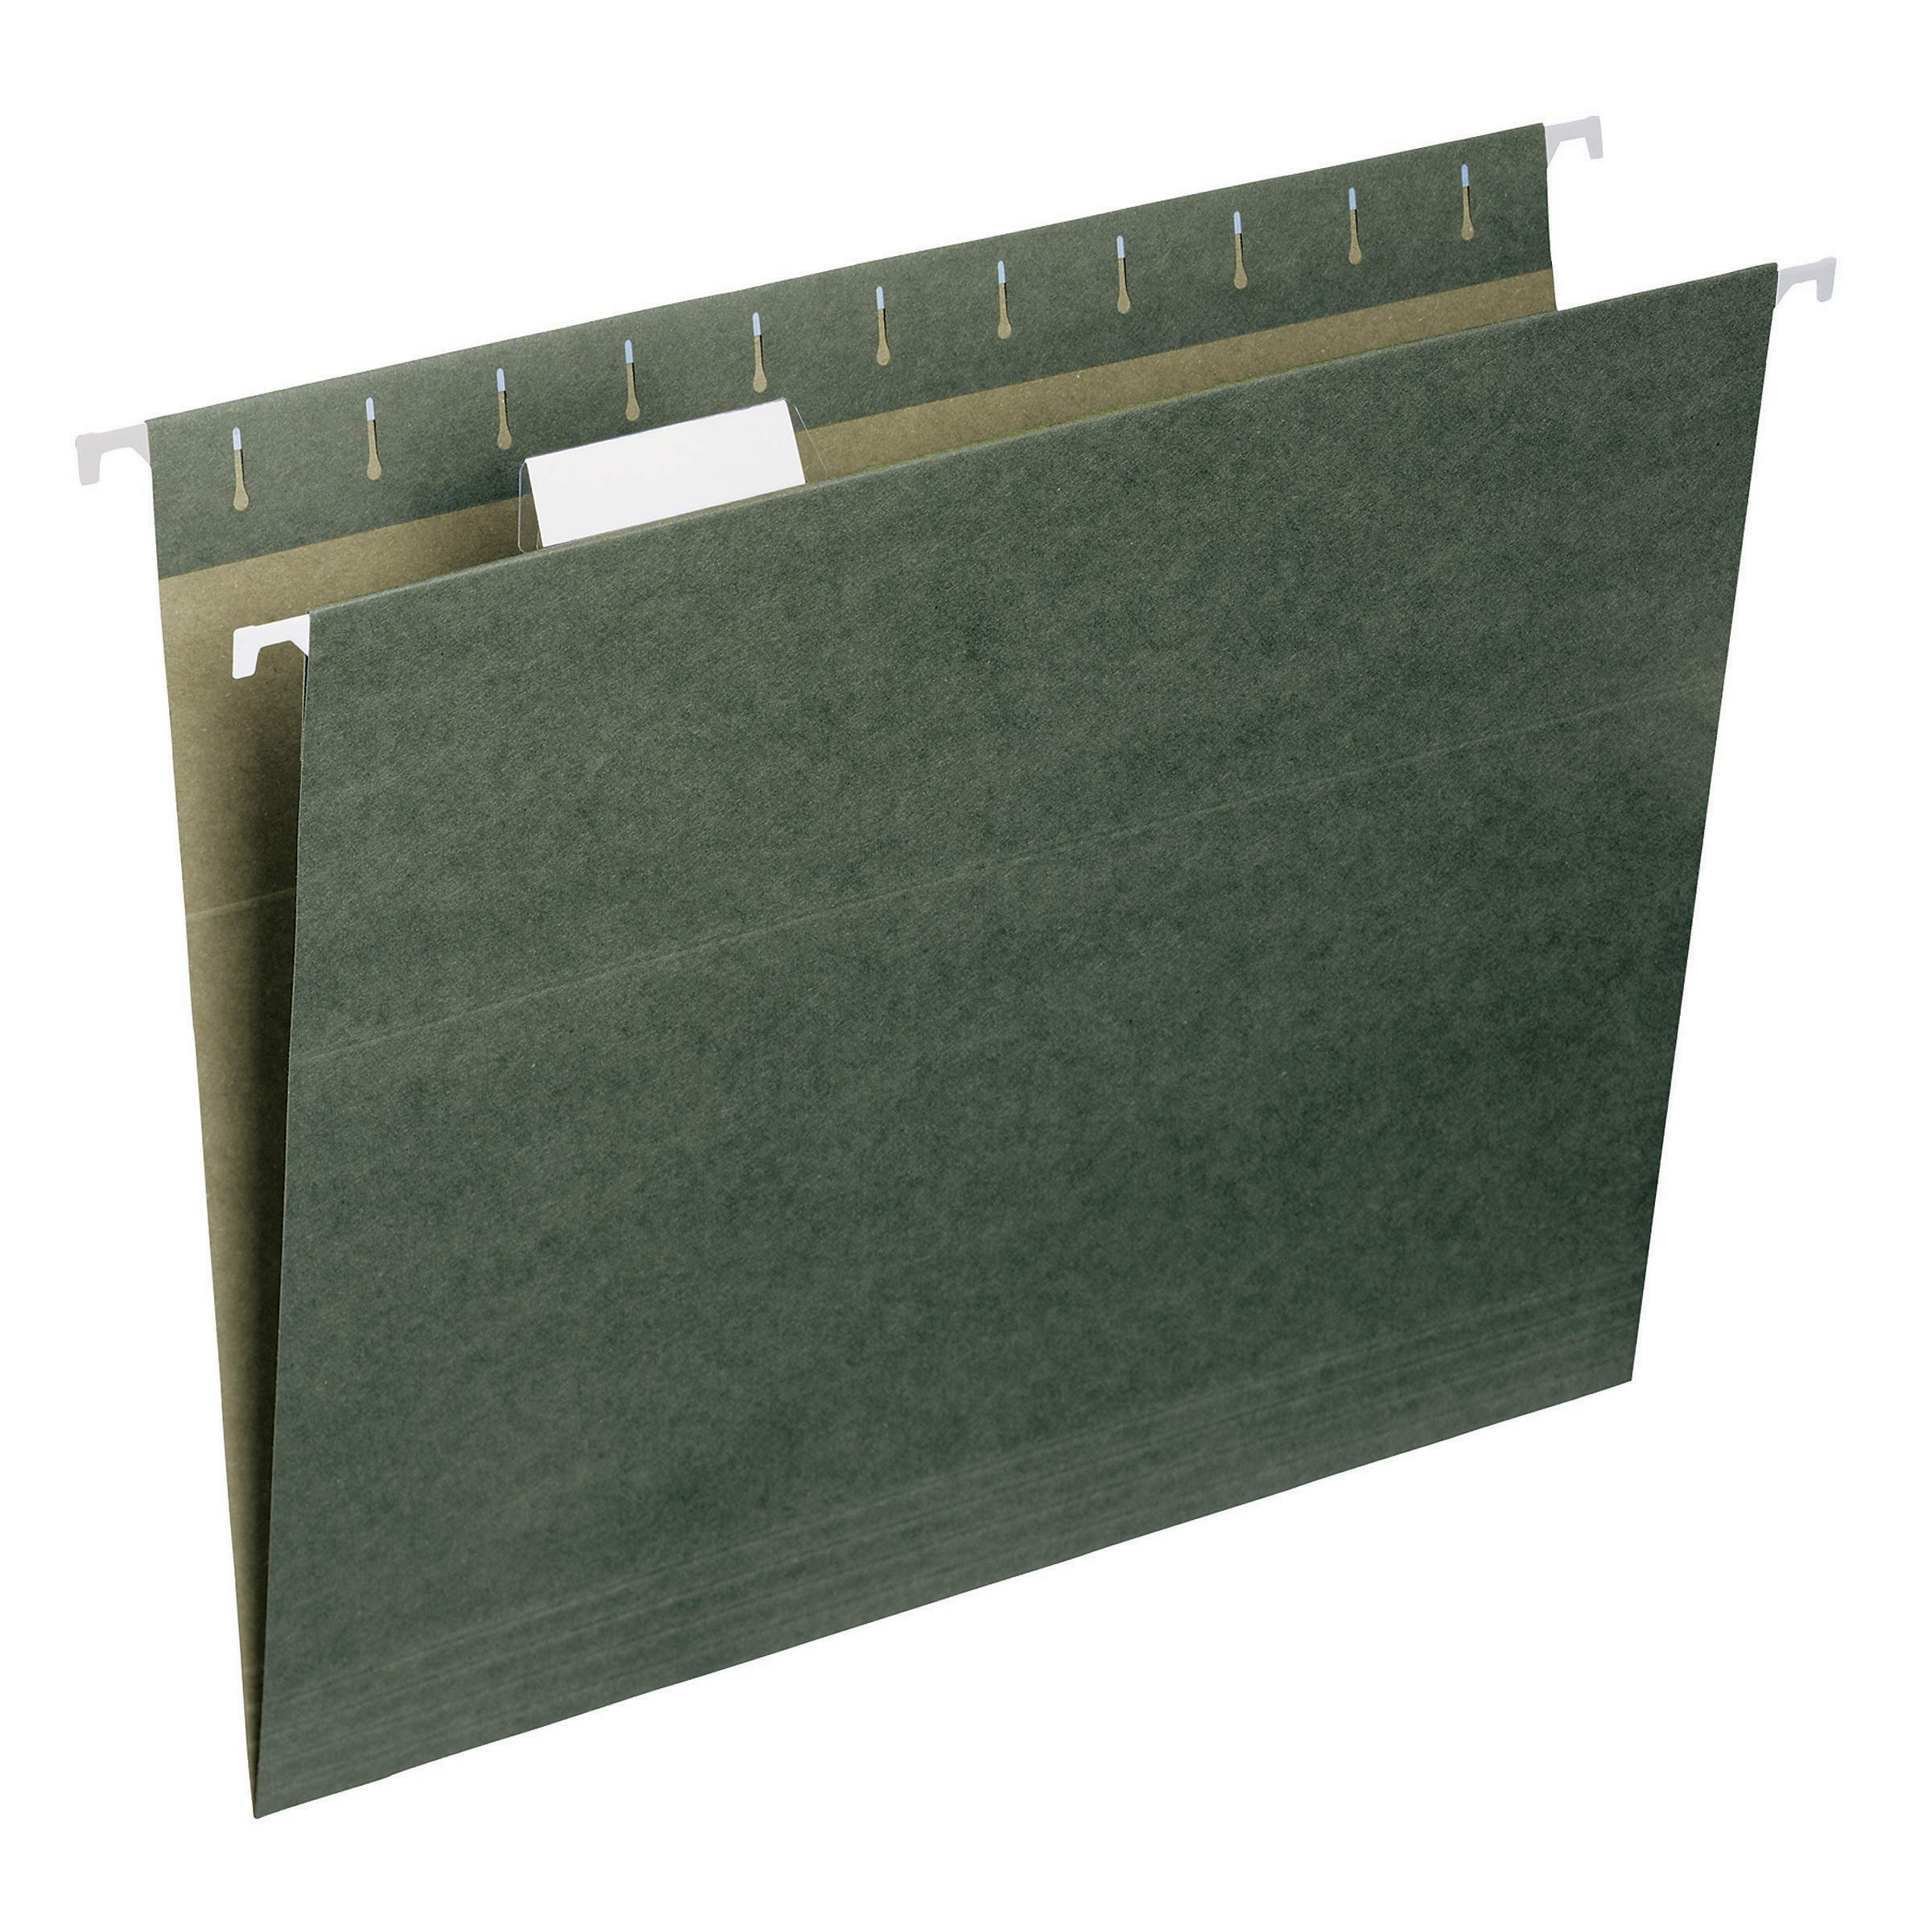 Smead Hanging File Folder with Tab, 1/5-Cut Adjustable Tab, Letter Size, Standard Green, 50 per Box (64029) by Smead